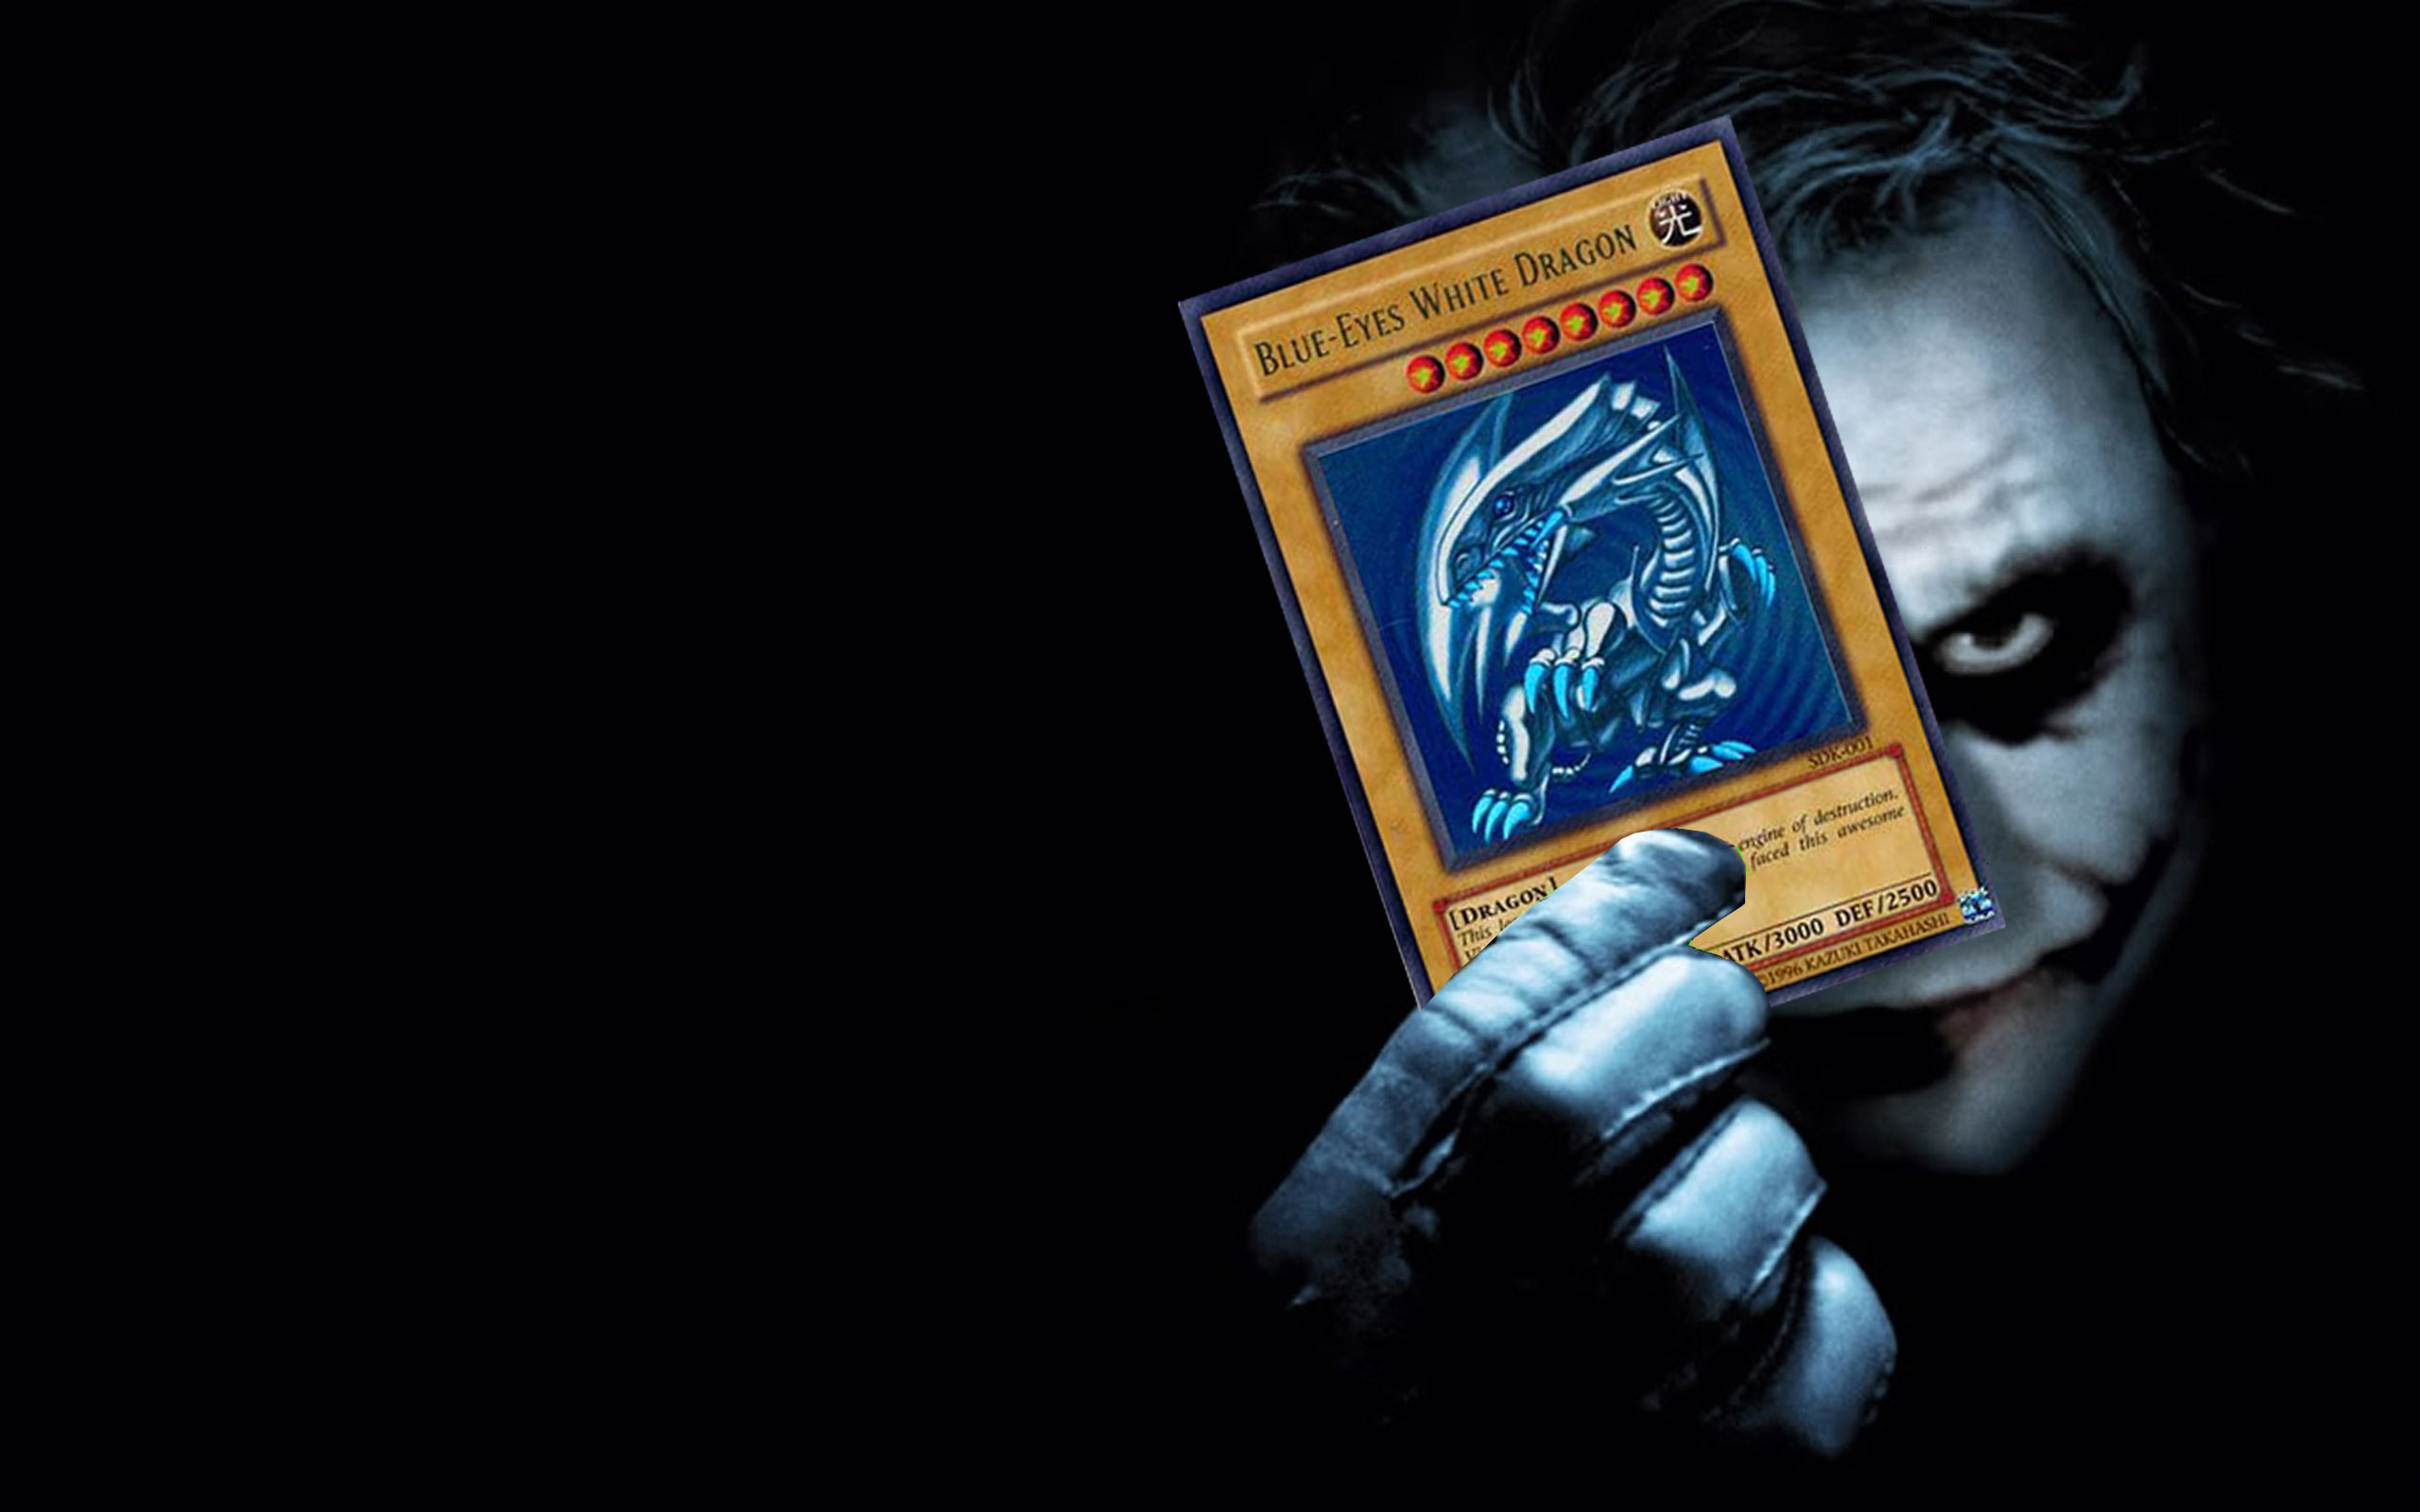 dark knight yu gi oh cards joker playing card wallpaper background 2560x1600